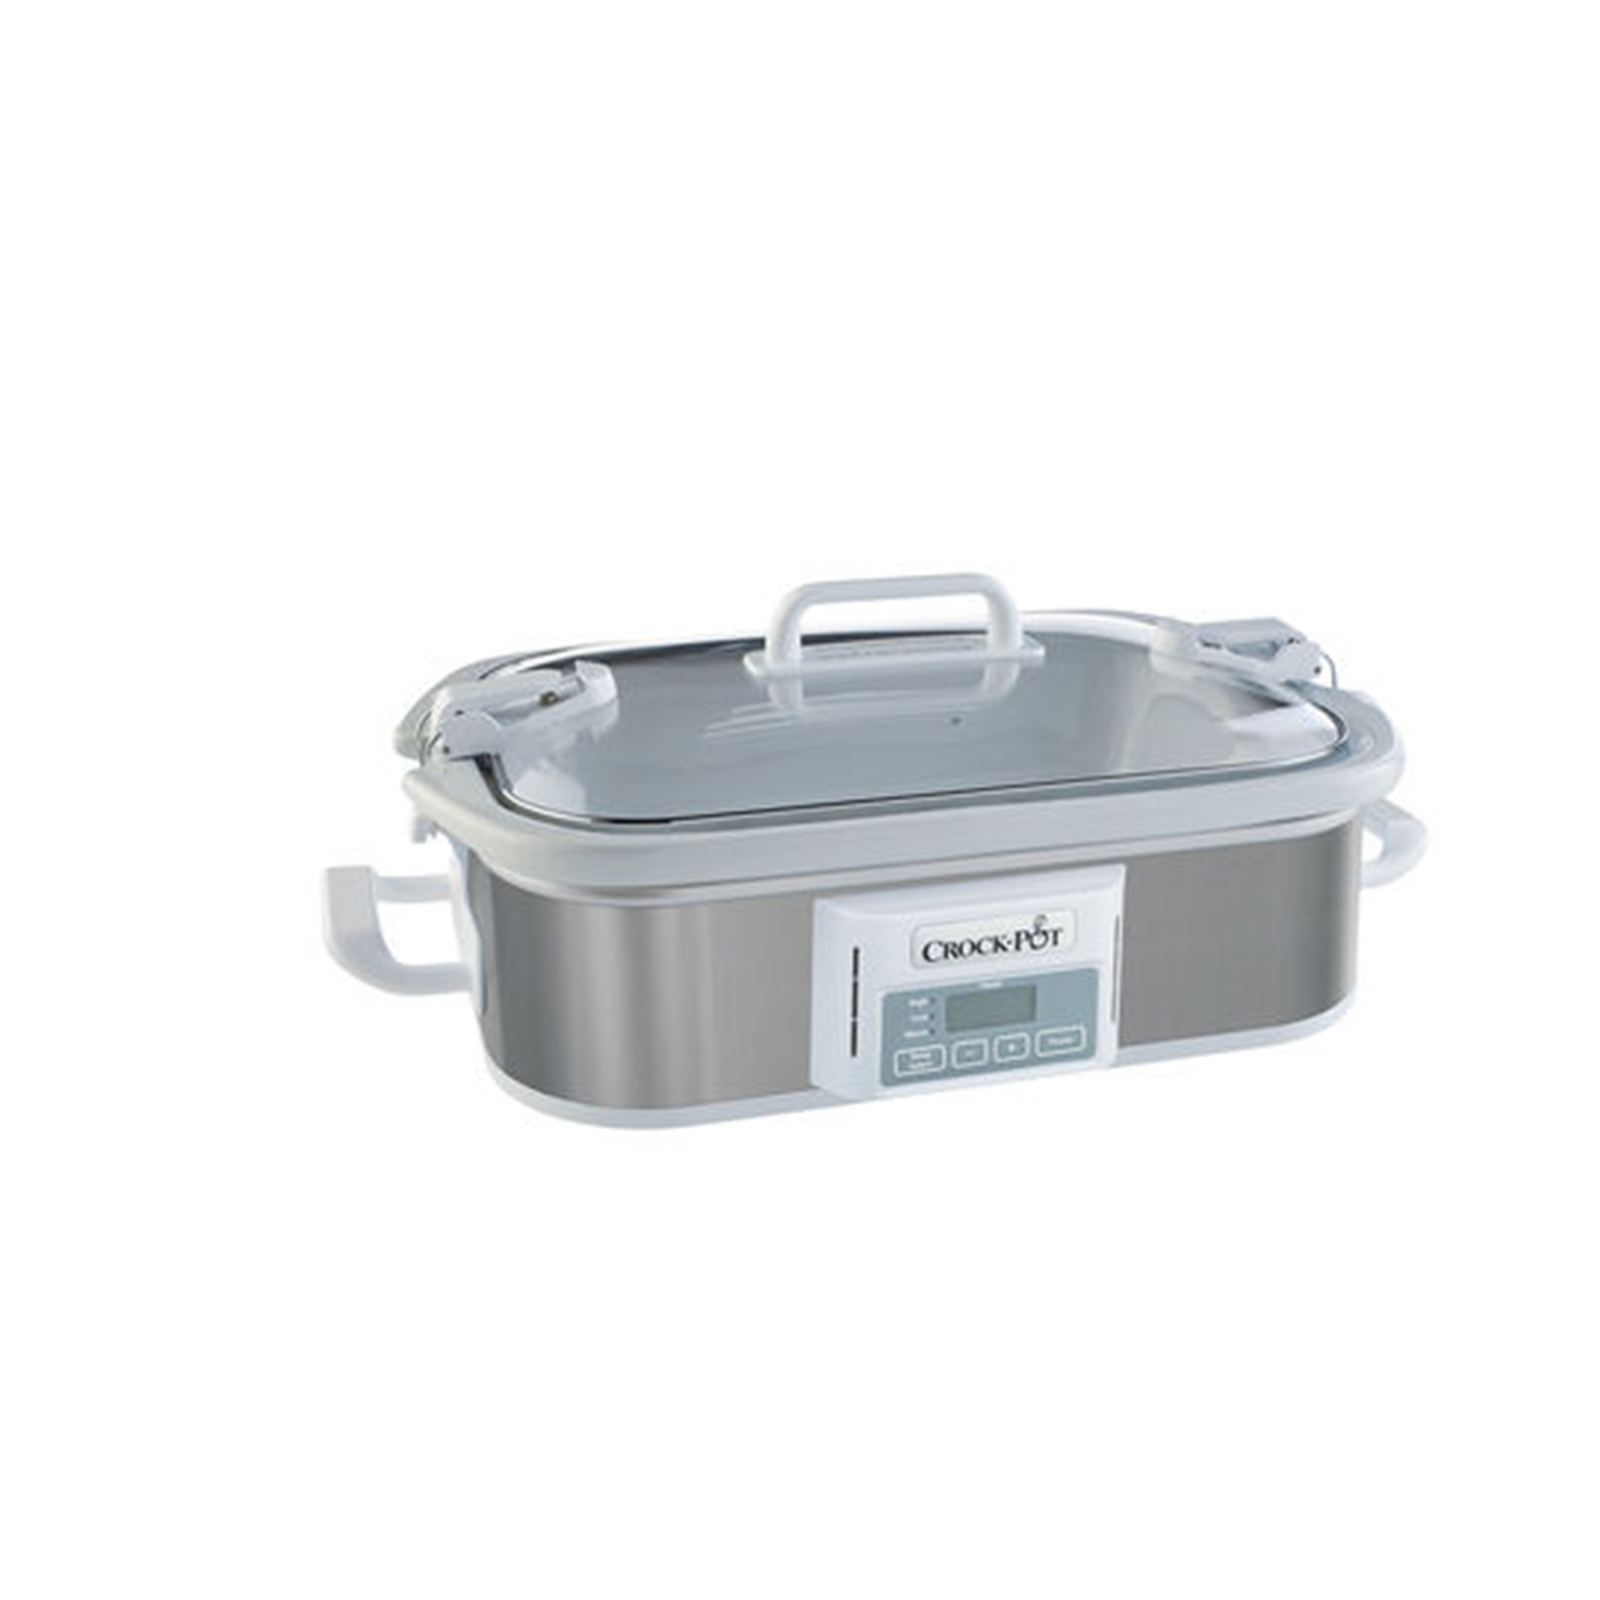 CrockPot 3.5 Quart Programmable Casserole Crock Slow Cooker